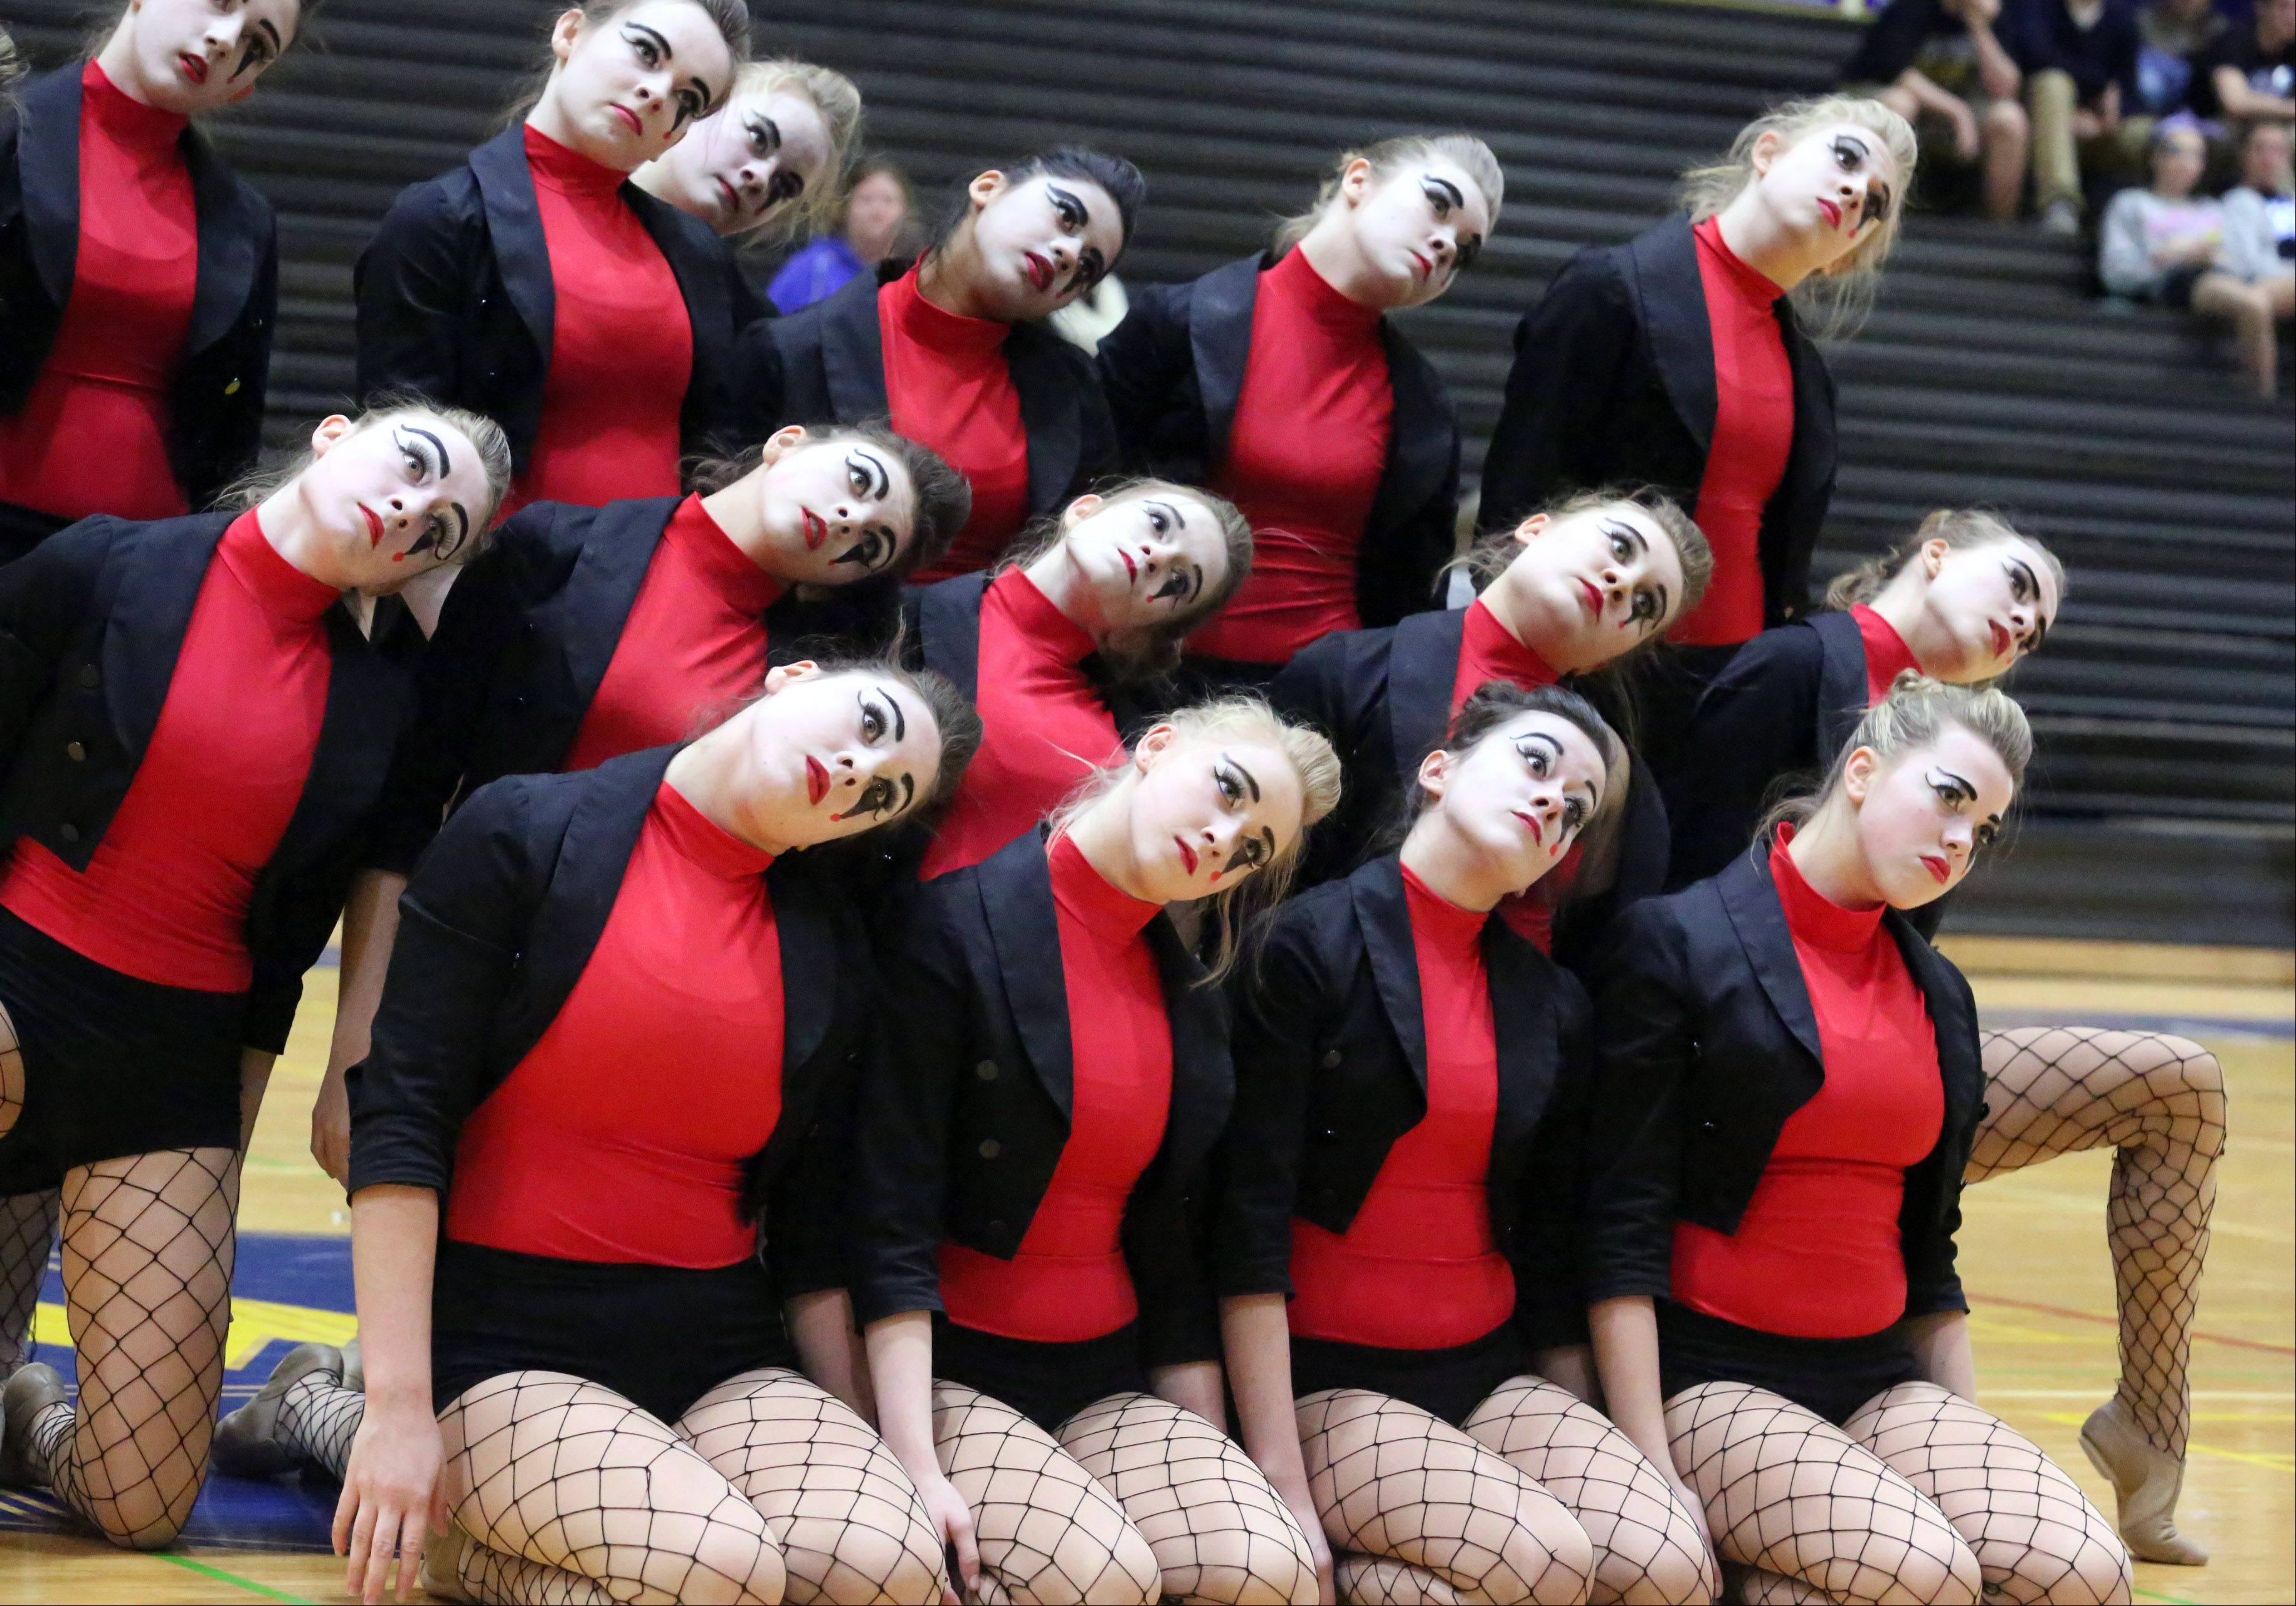 Grayslake Central High School's dance team competes at the IHSA competitive dance sectional at Glenbrook South High School on Saturday in Glenview.